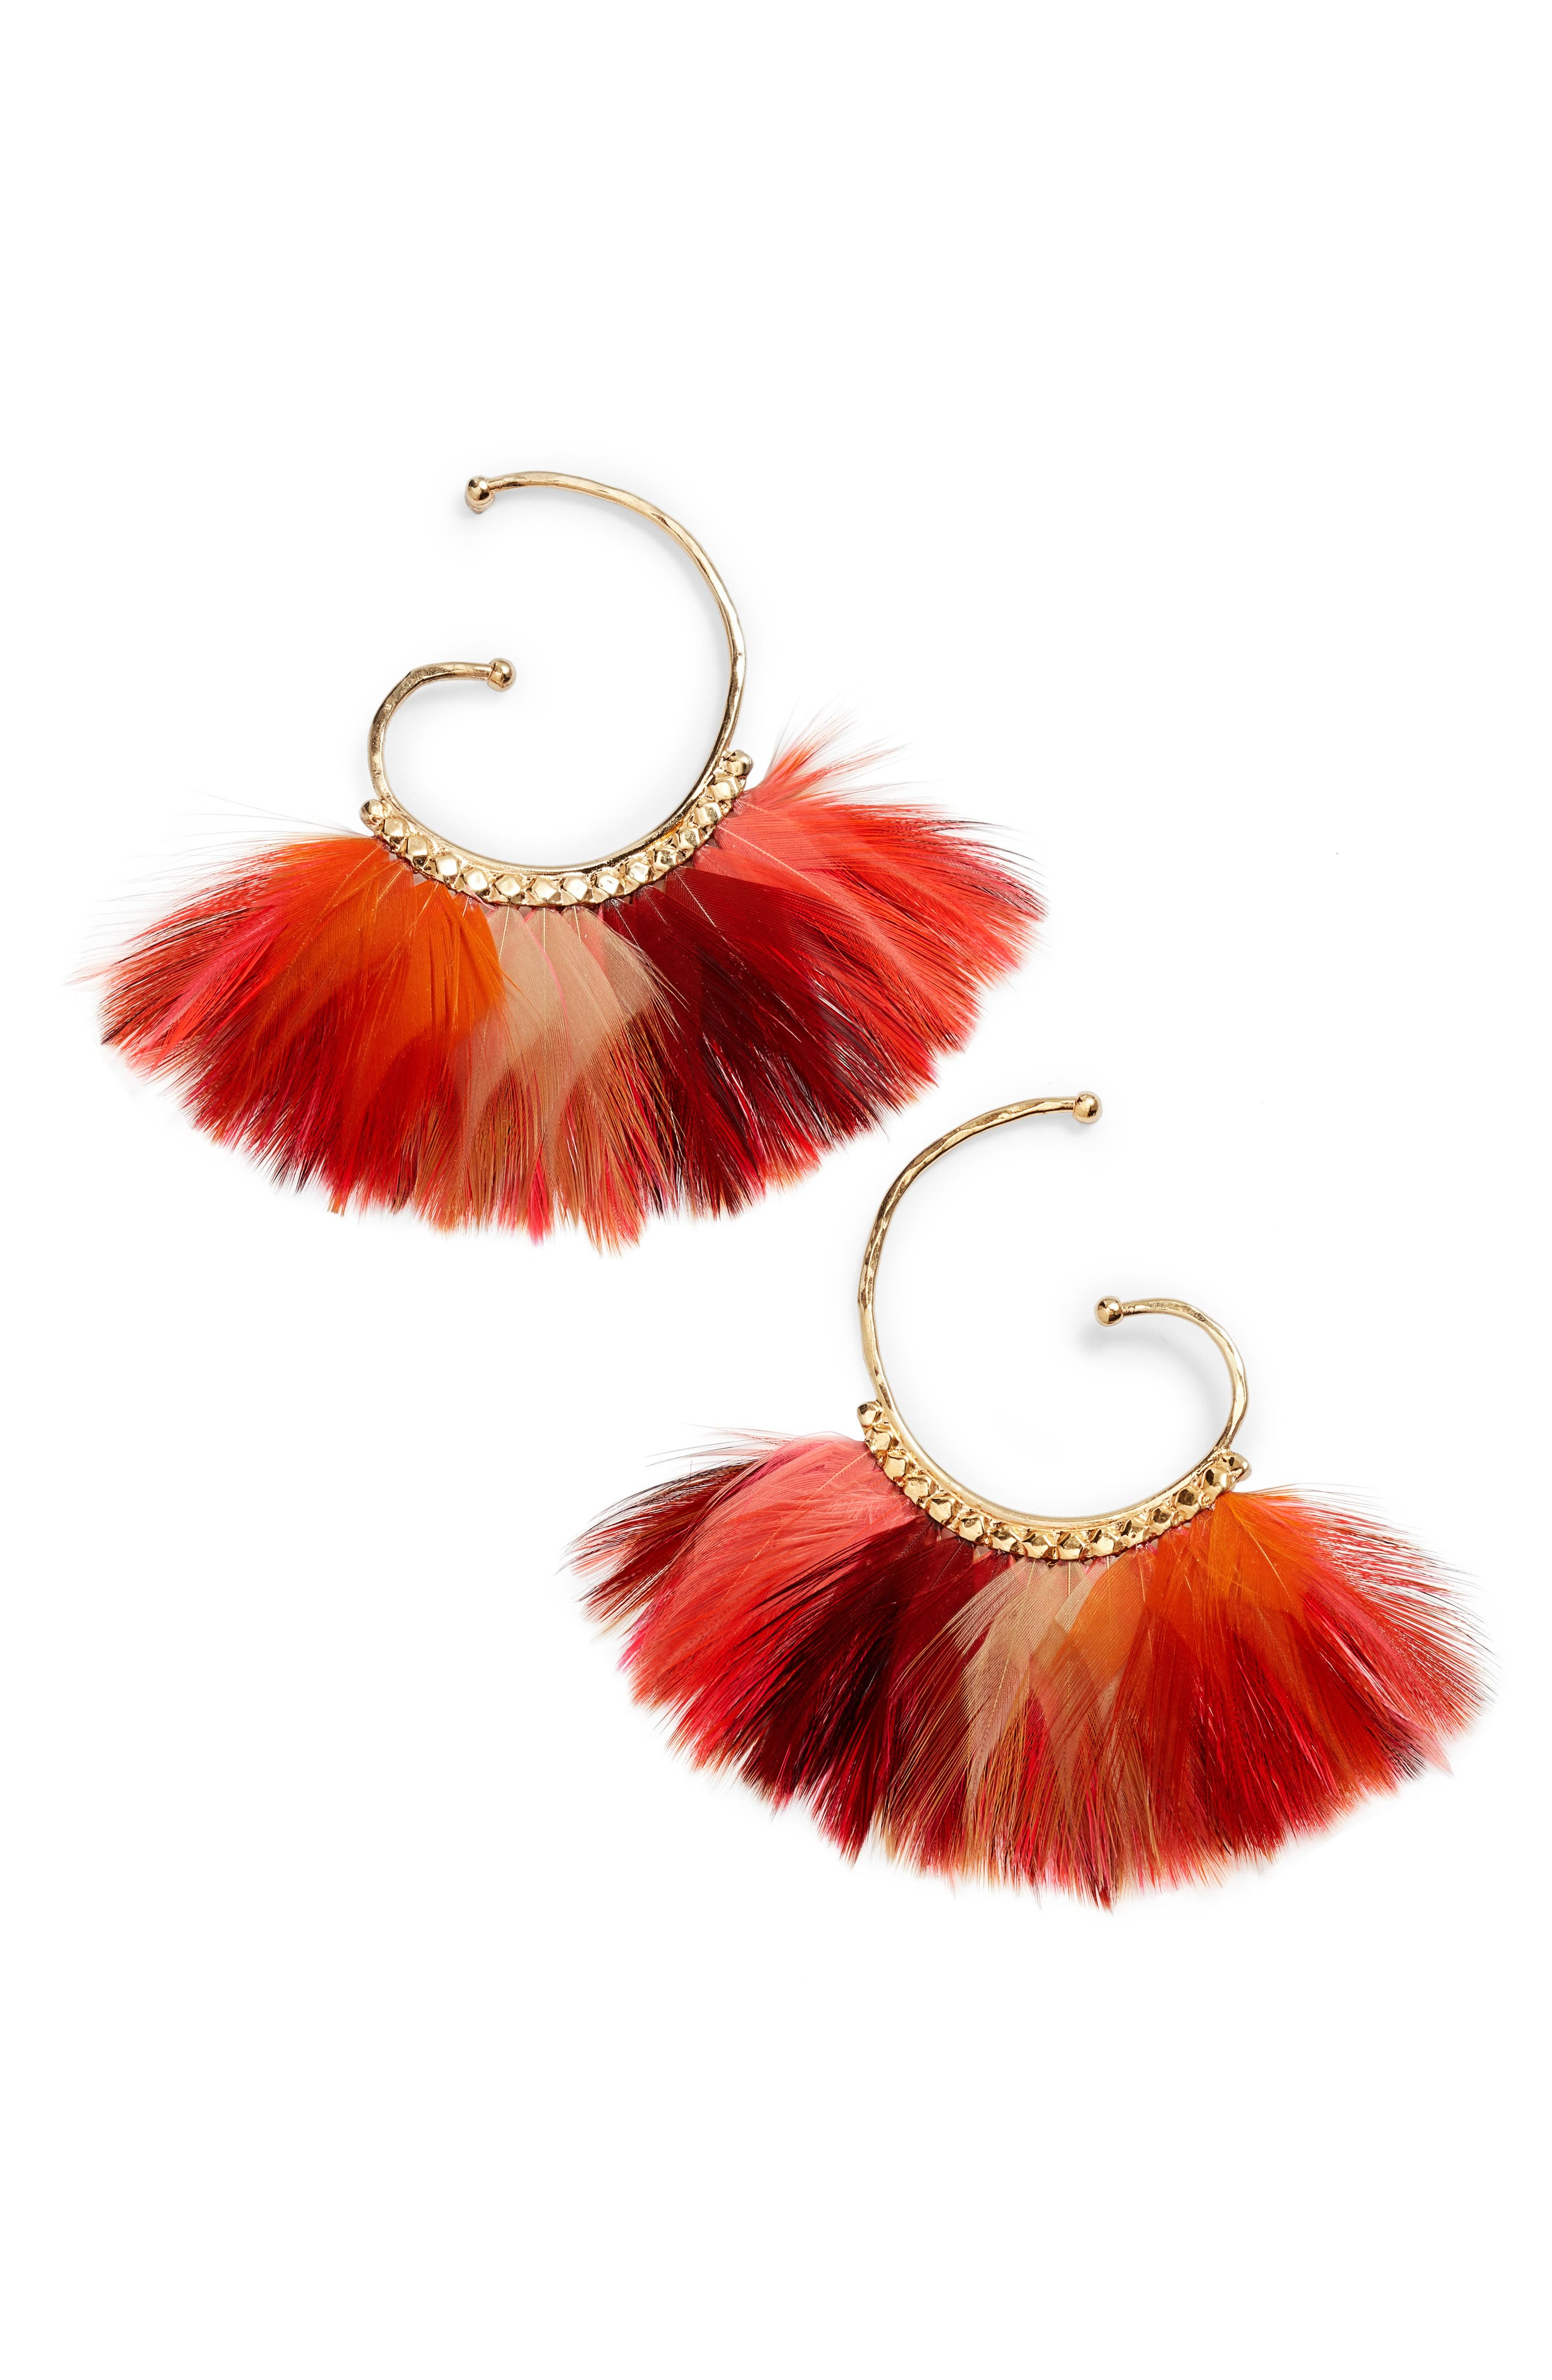 'Buzios' Feather Earrings,                             Main thumbnail 1, color,                             Neon Pink